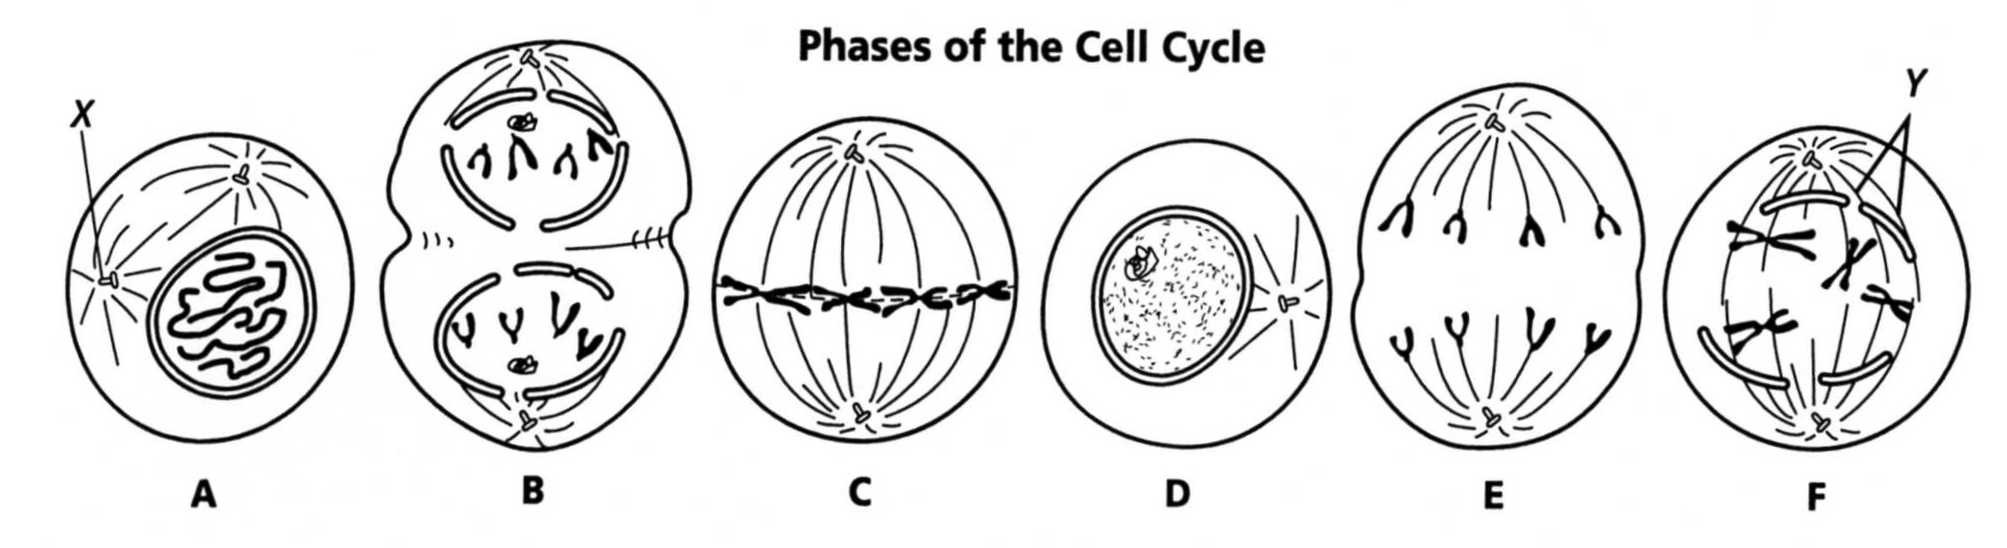 worksheet Cell Cycle Mitosis Worksheet phases of mitosis worksheet photos pigmu worksheets for school pigmu